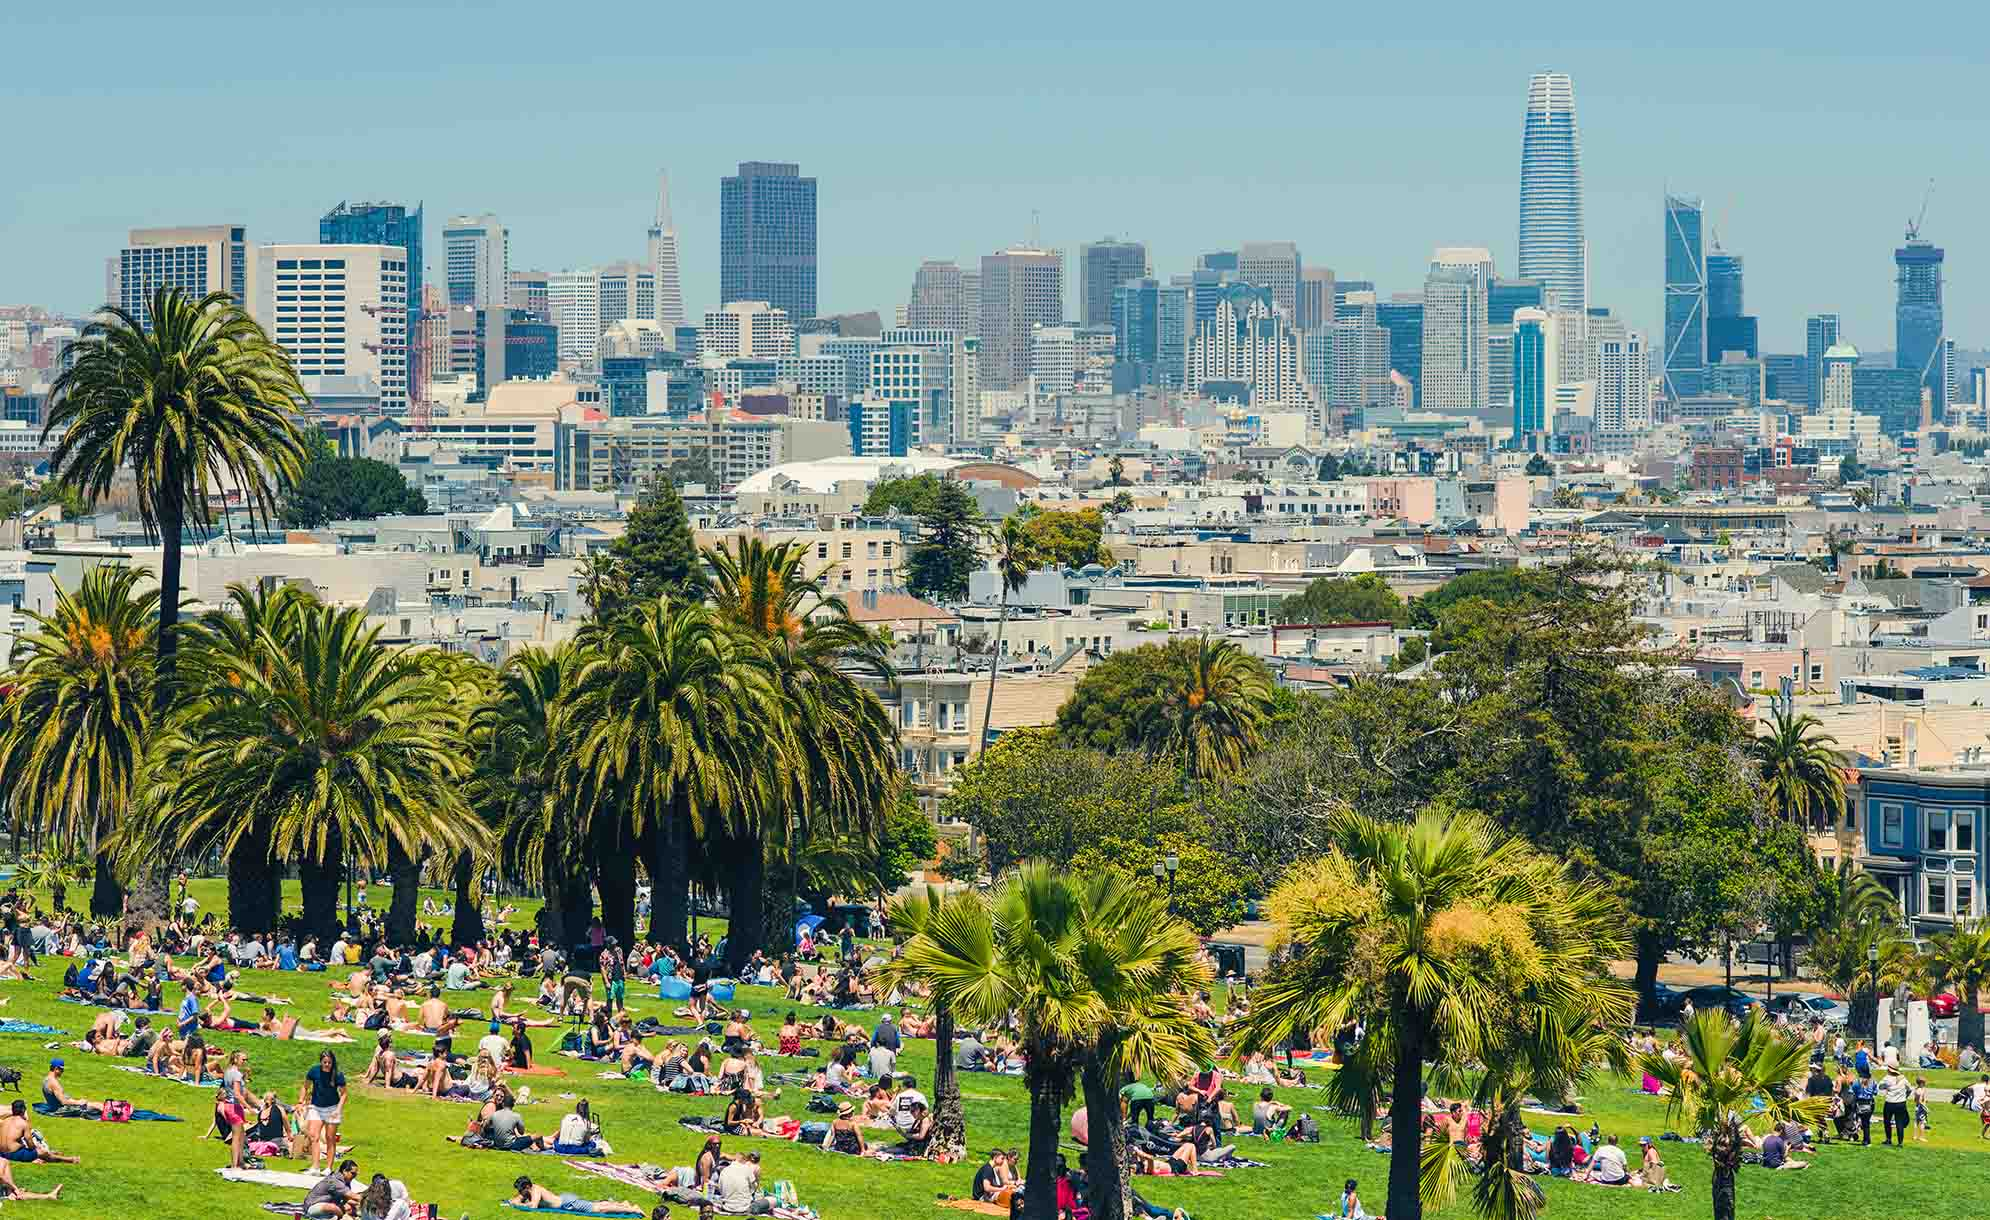 San Francisco city guide - Dolores Park